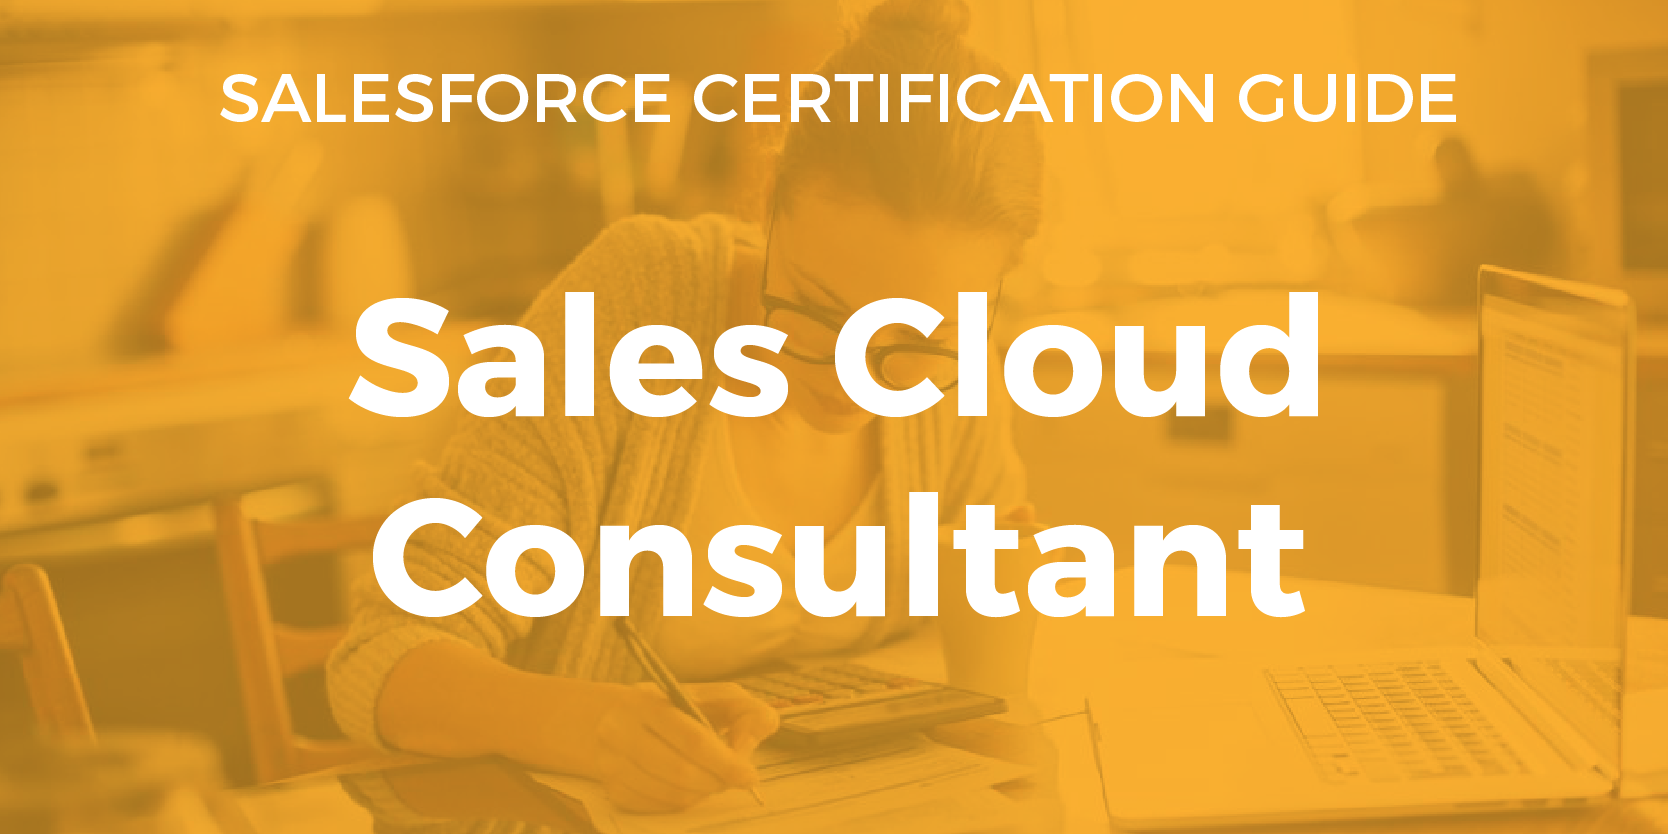 Sales Cloud Consultant Resource Guide Salesforce Chris